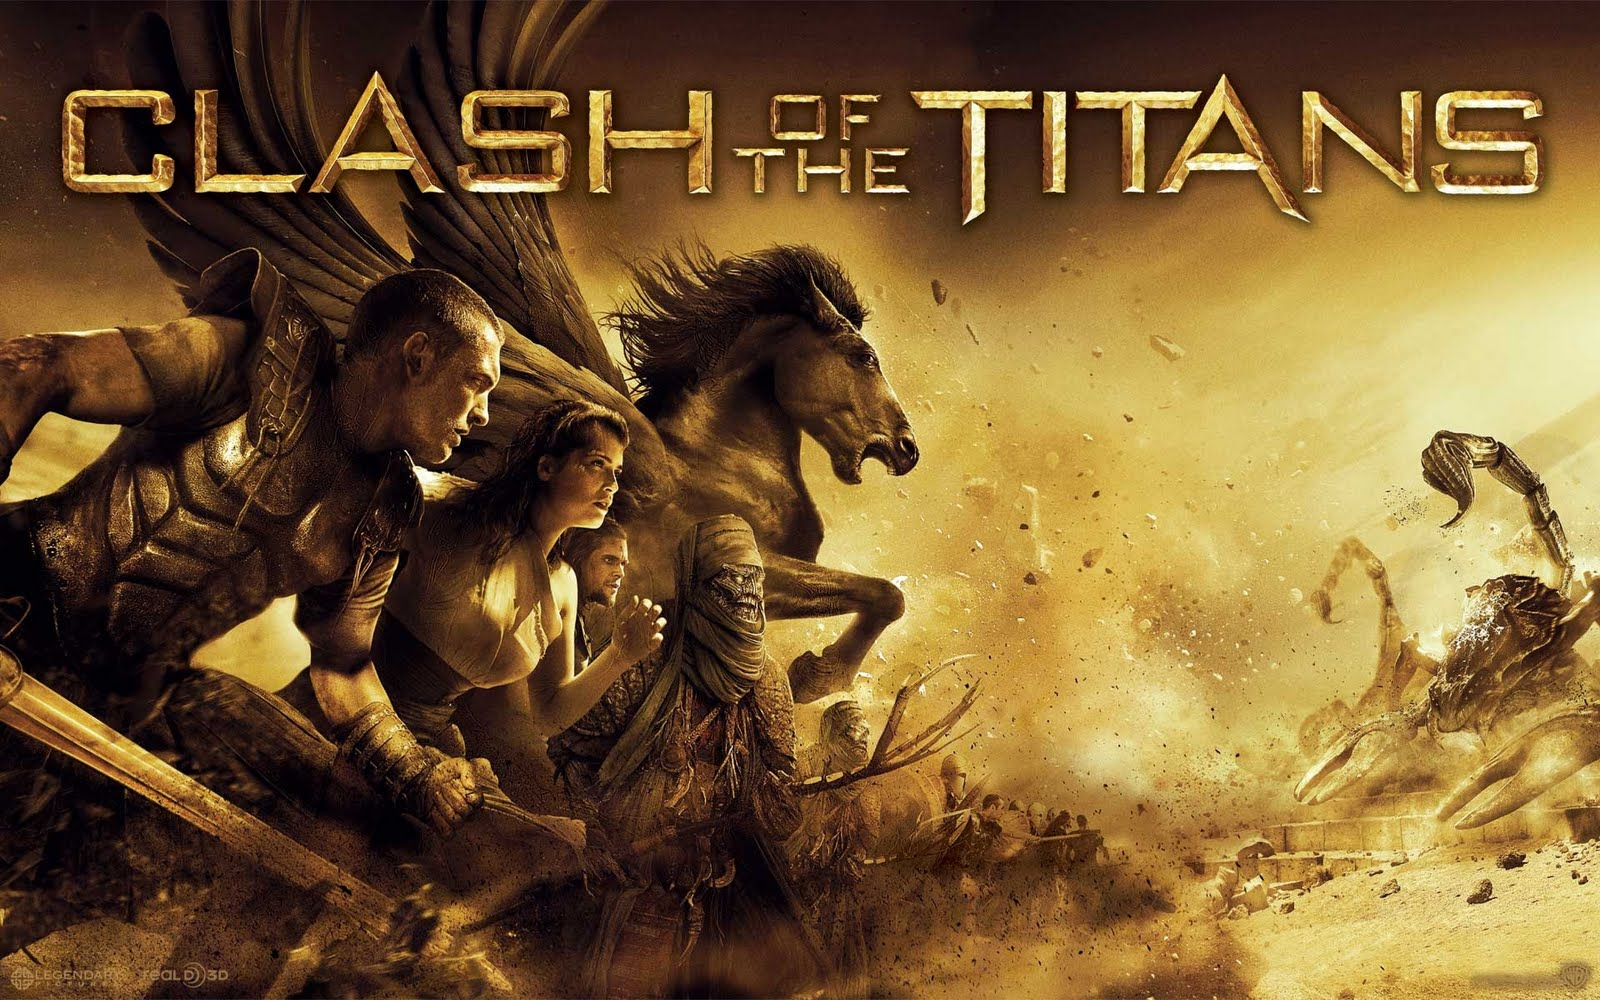 1600x1000 - Clash Of The Titans (2010) Wallpapers 5